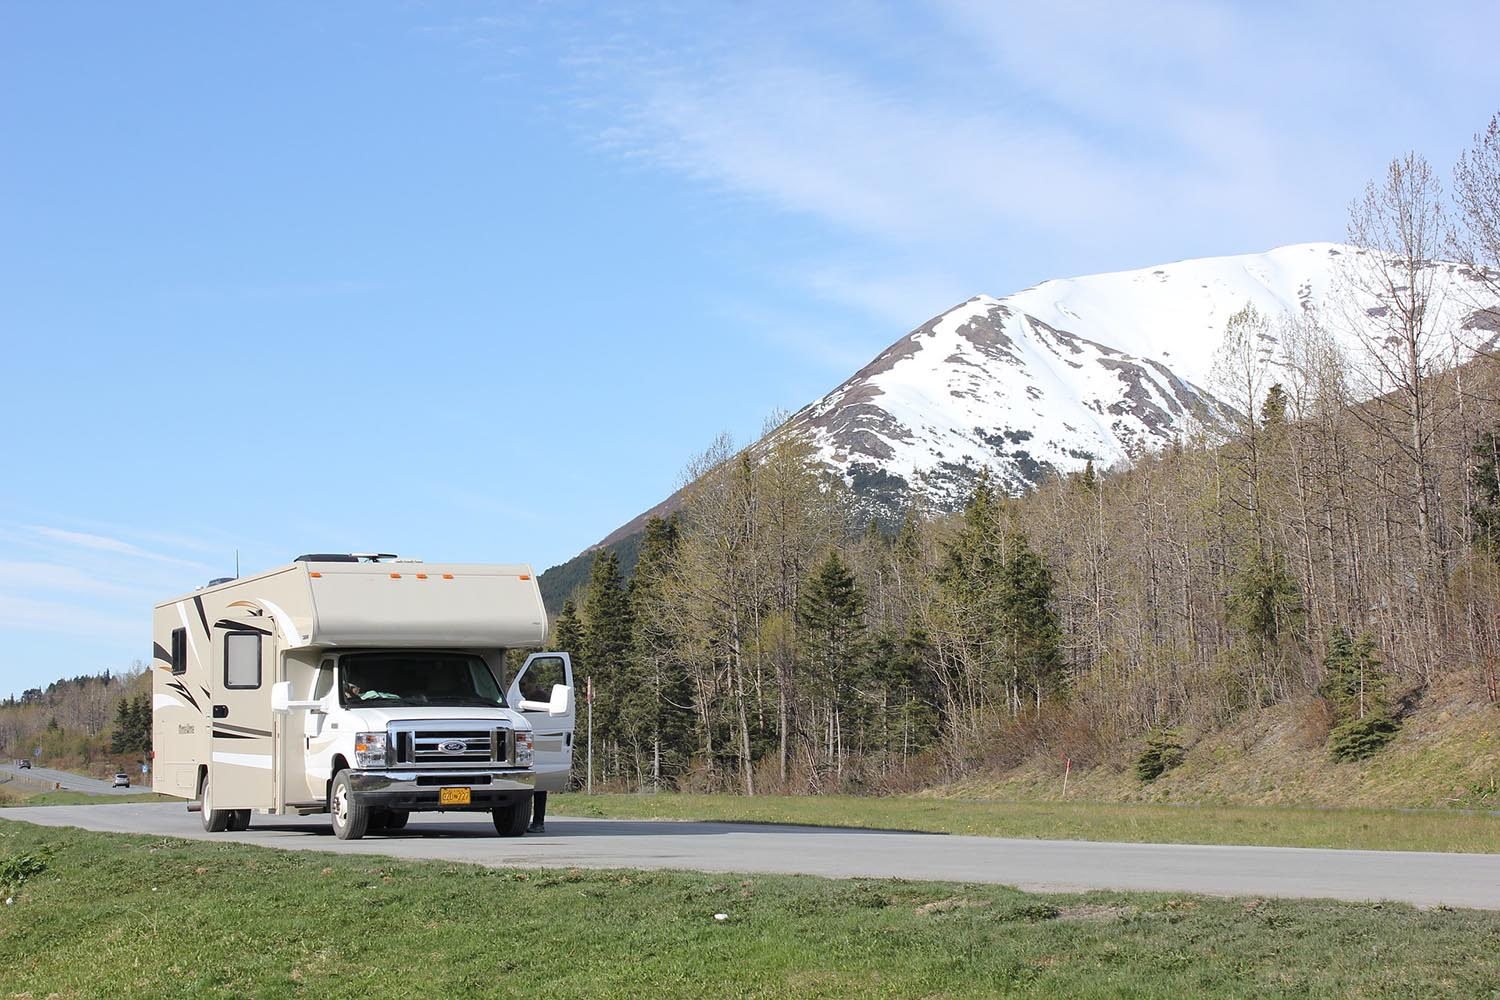 rv getting ready to drive next to snowy mountain